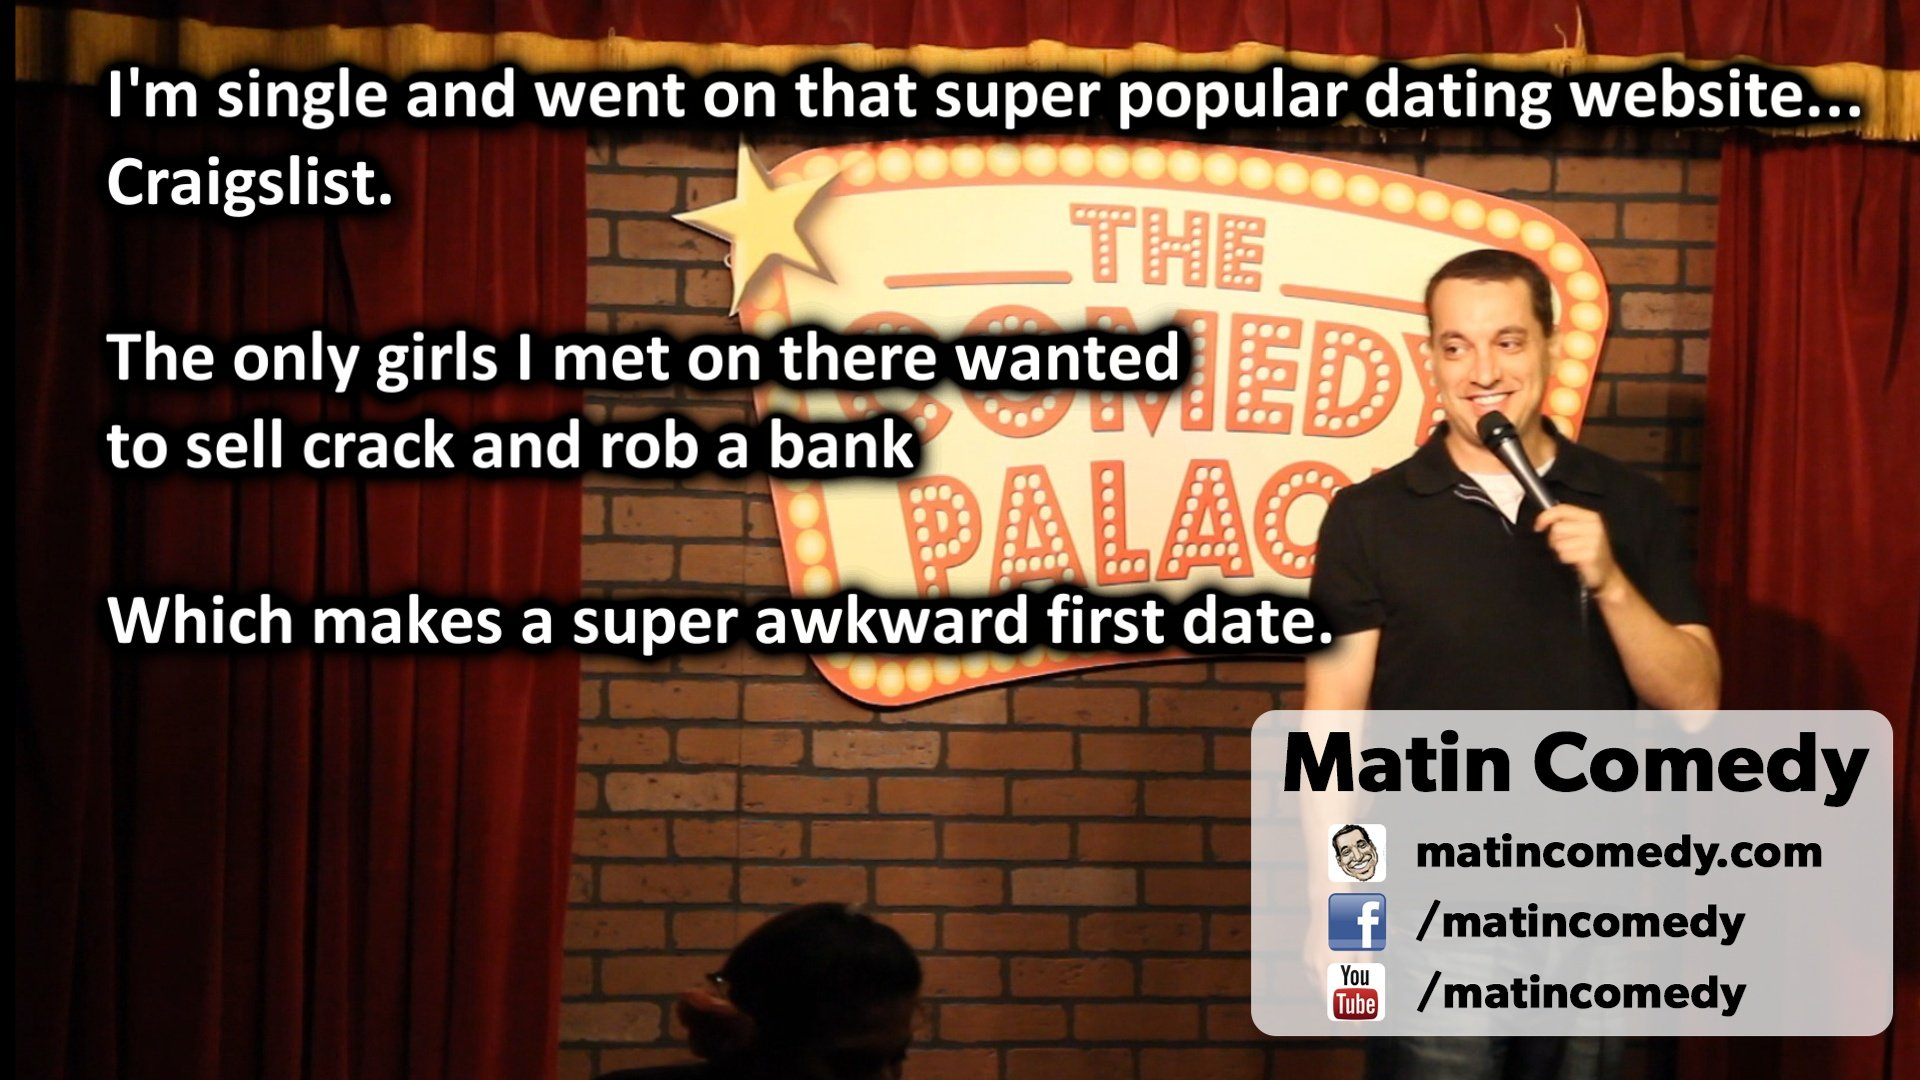 I'm single and went on that super popular dating website…